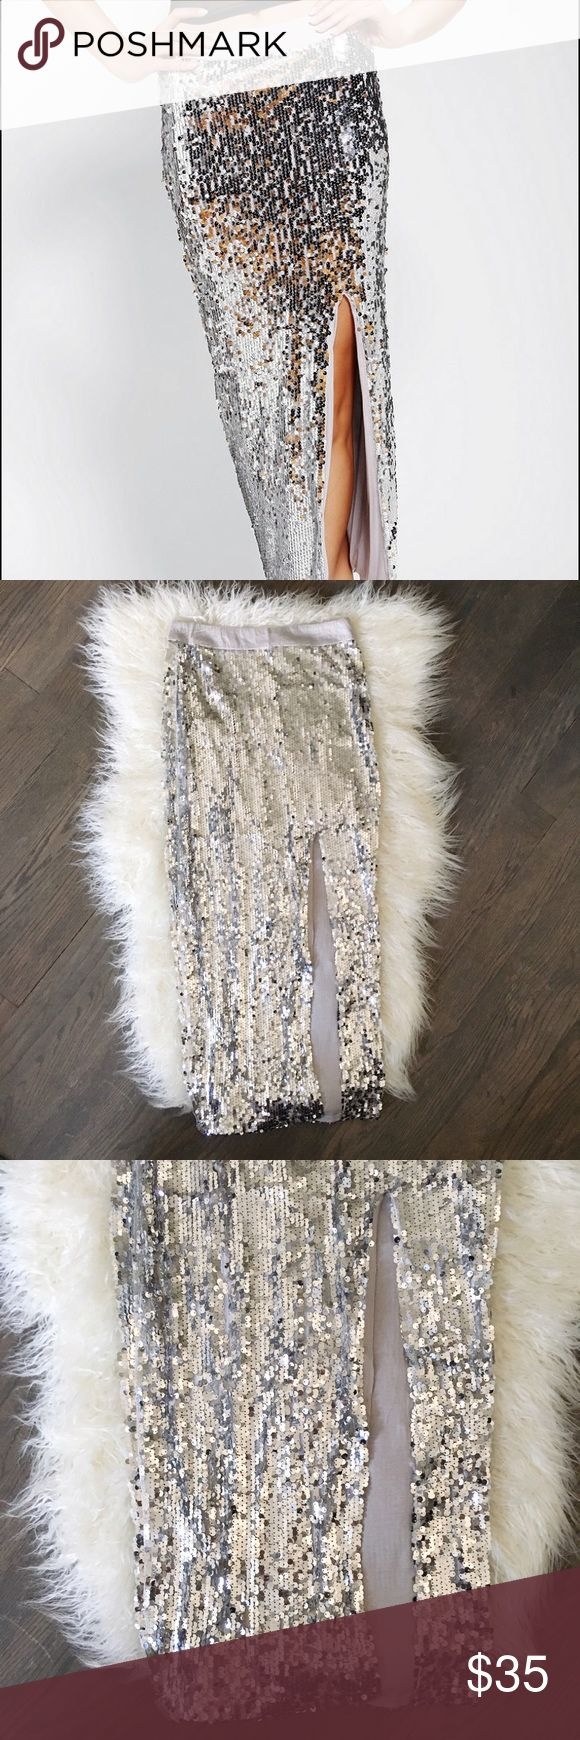 """urban outfitters • nwt sequin maxi skirt silver Never worn, new with tags silver sequined maxi skirt with side slit. Bought for a NYE party but never wore. Brand is """"Blaque Label"""", purchased at Urban Outfitters. Urban Outfitters Skirts Maxi"""